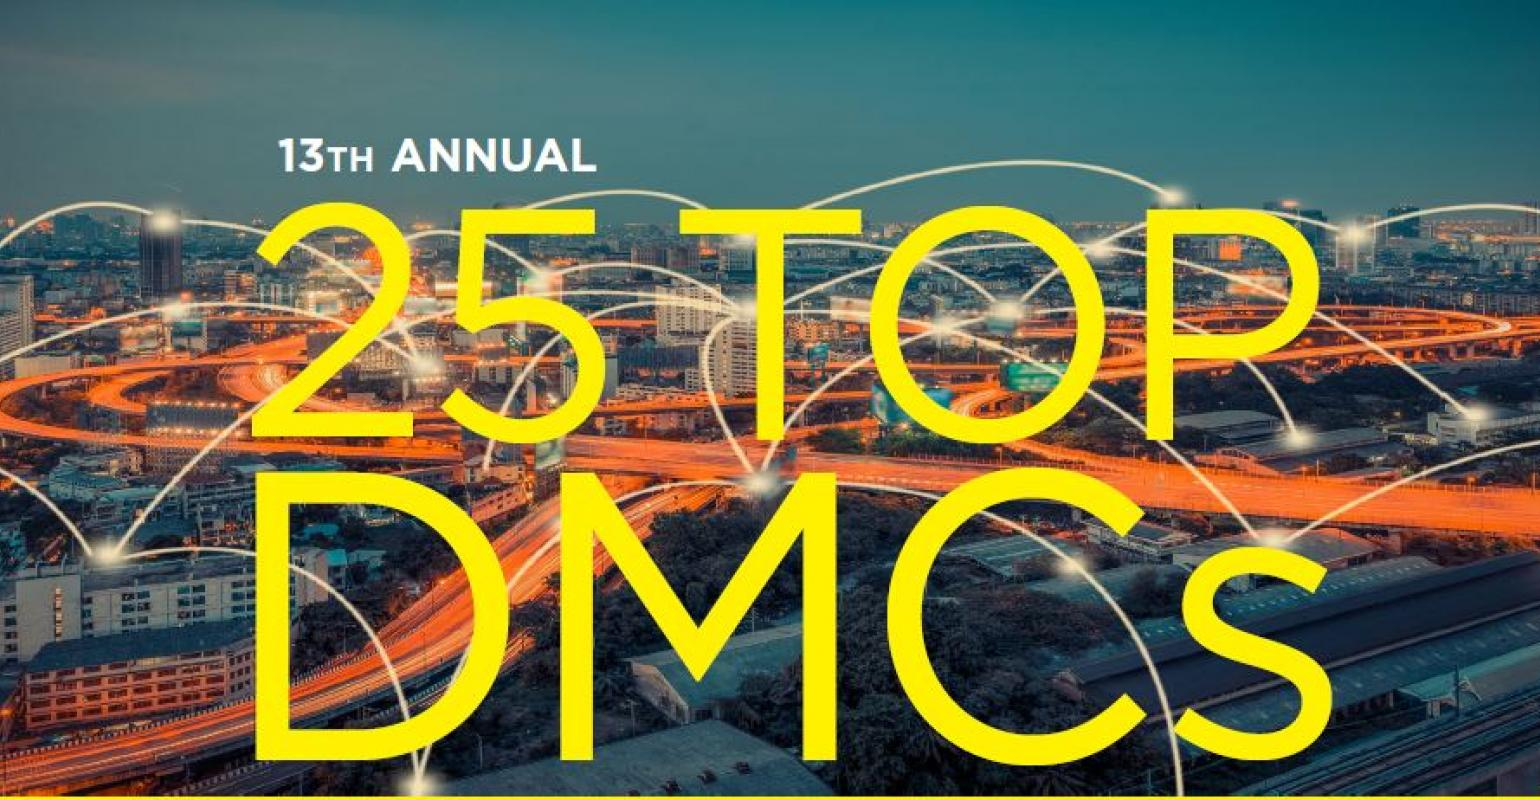 13th Annual Special Events 25 Top Destination Management